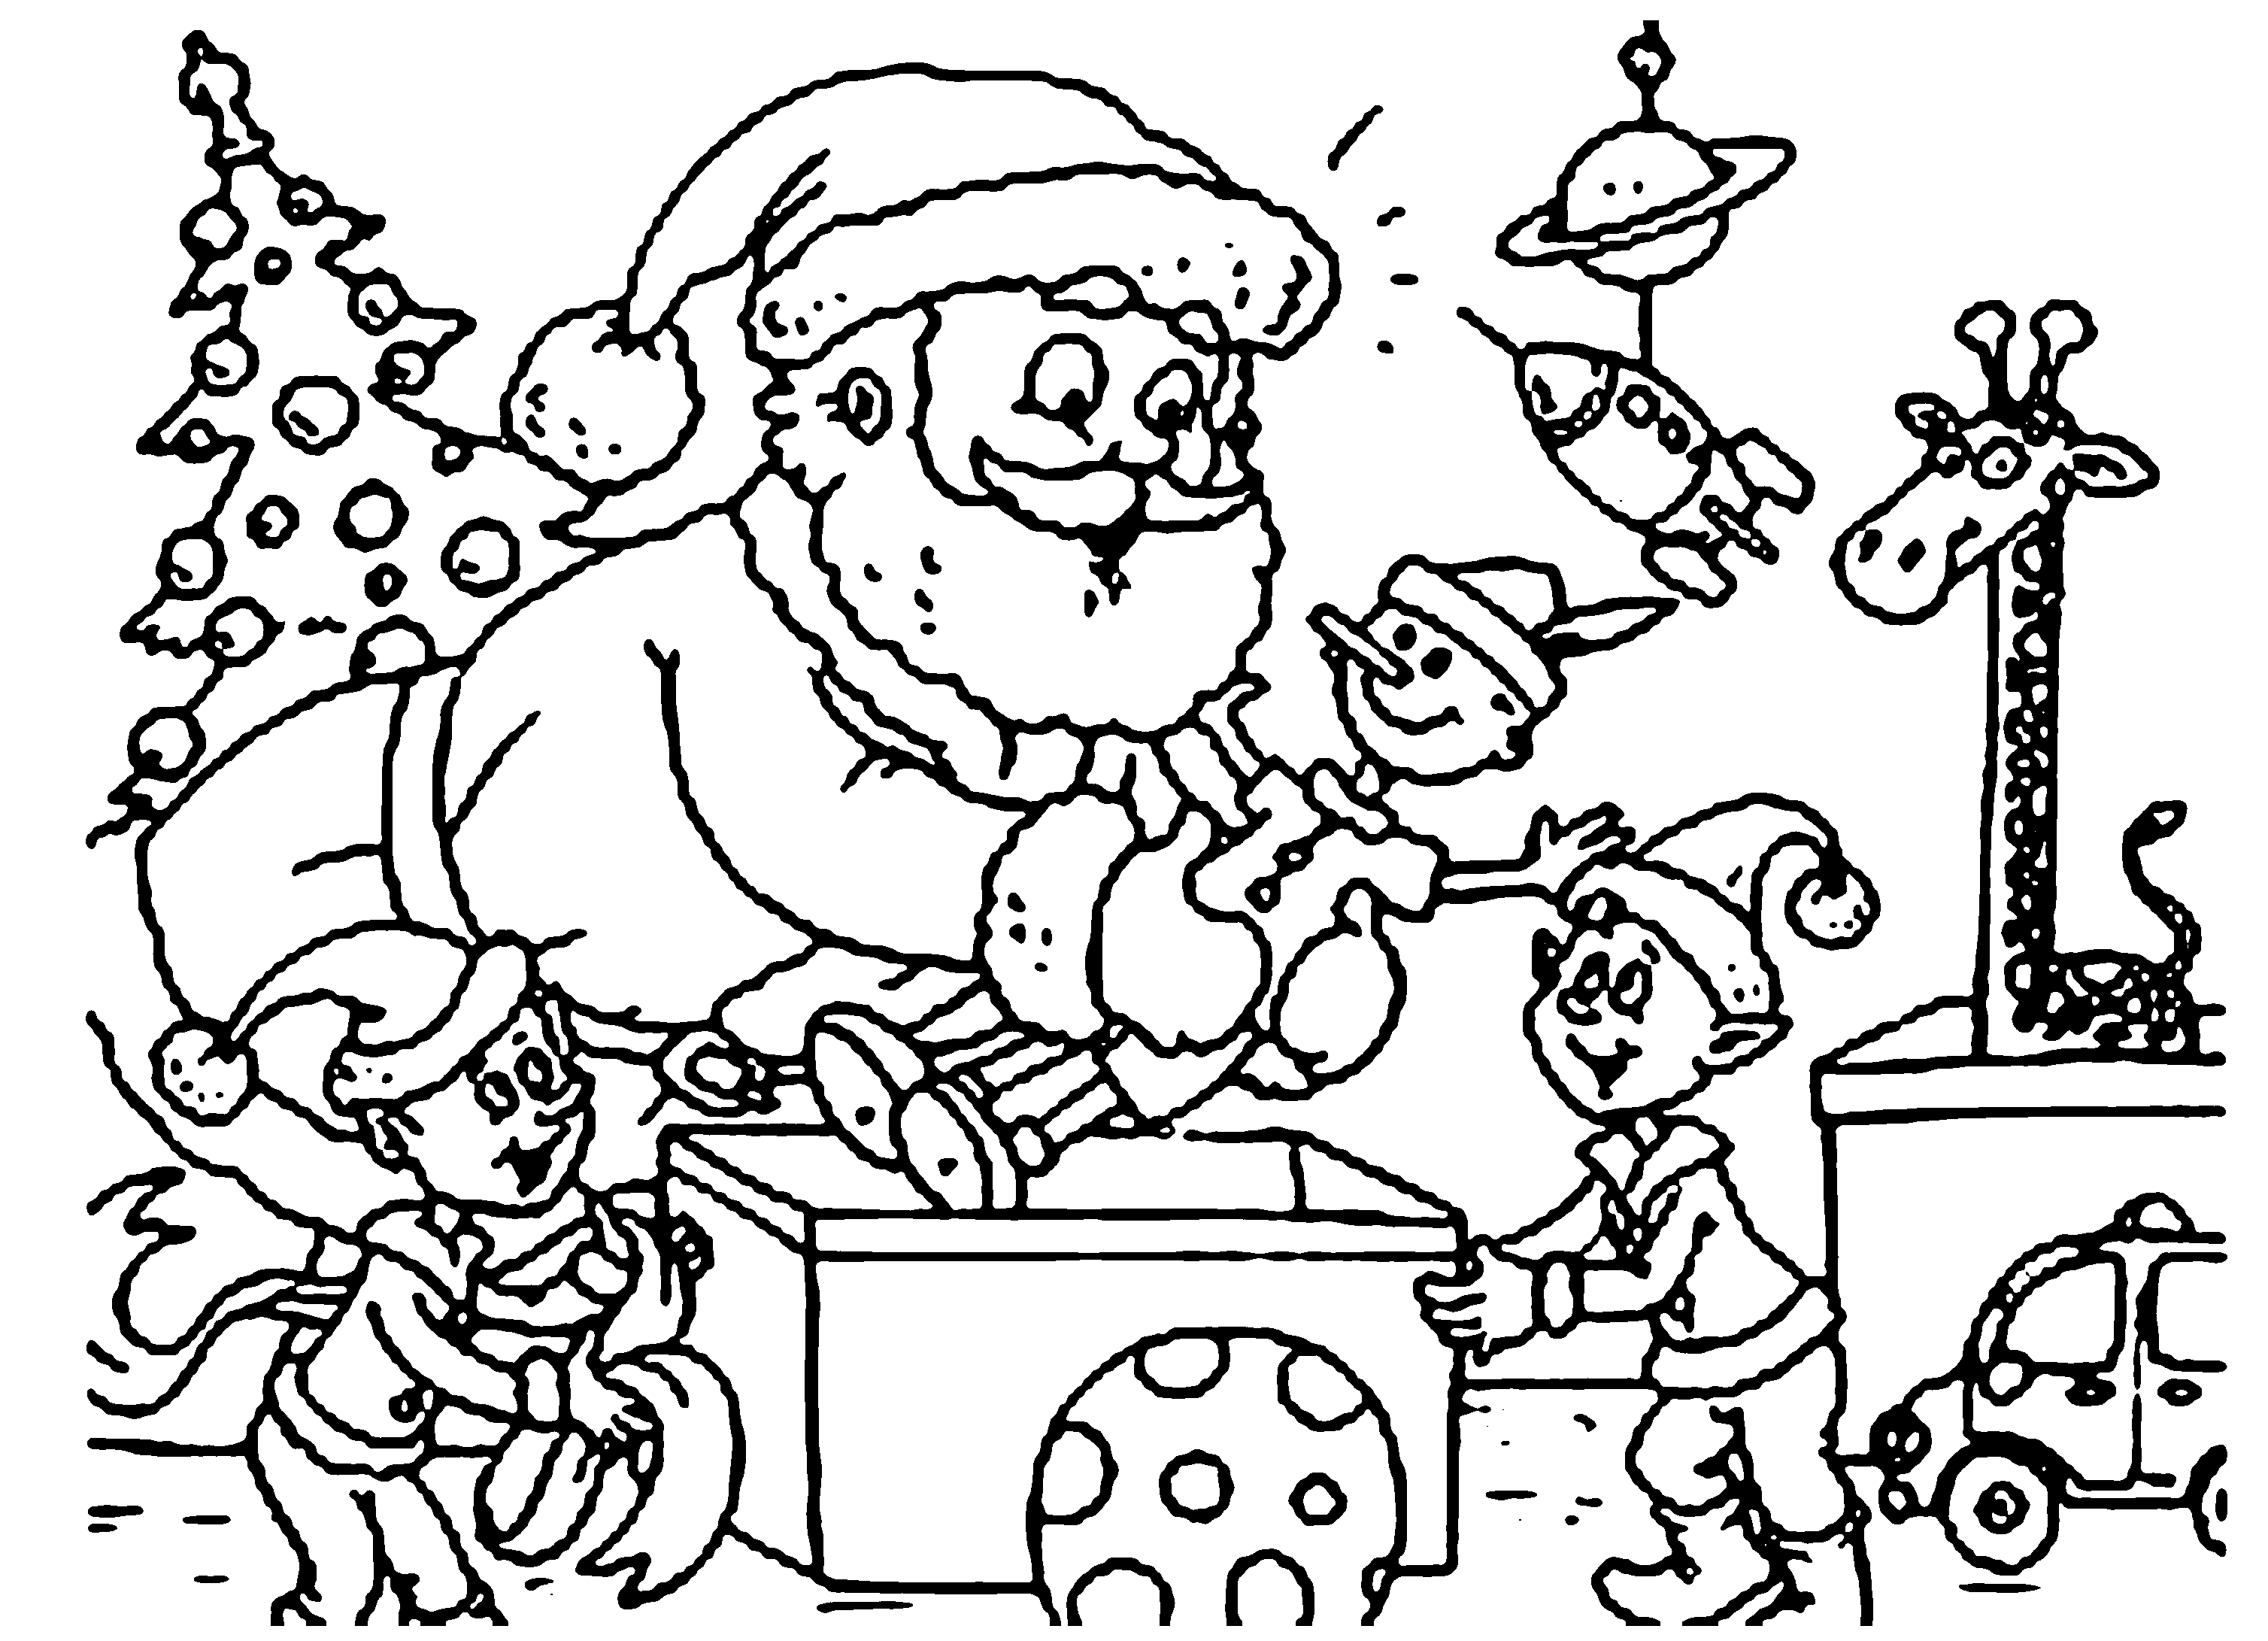 Coloring Pages Print Christmas Coloring Pages christmas coloring pages to print free az printable pages